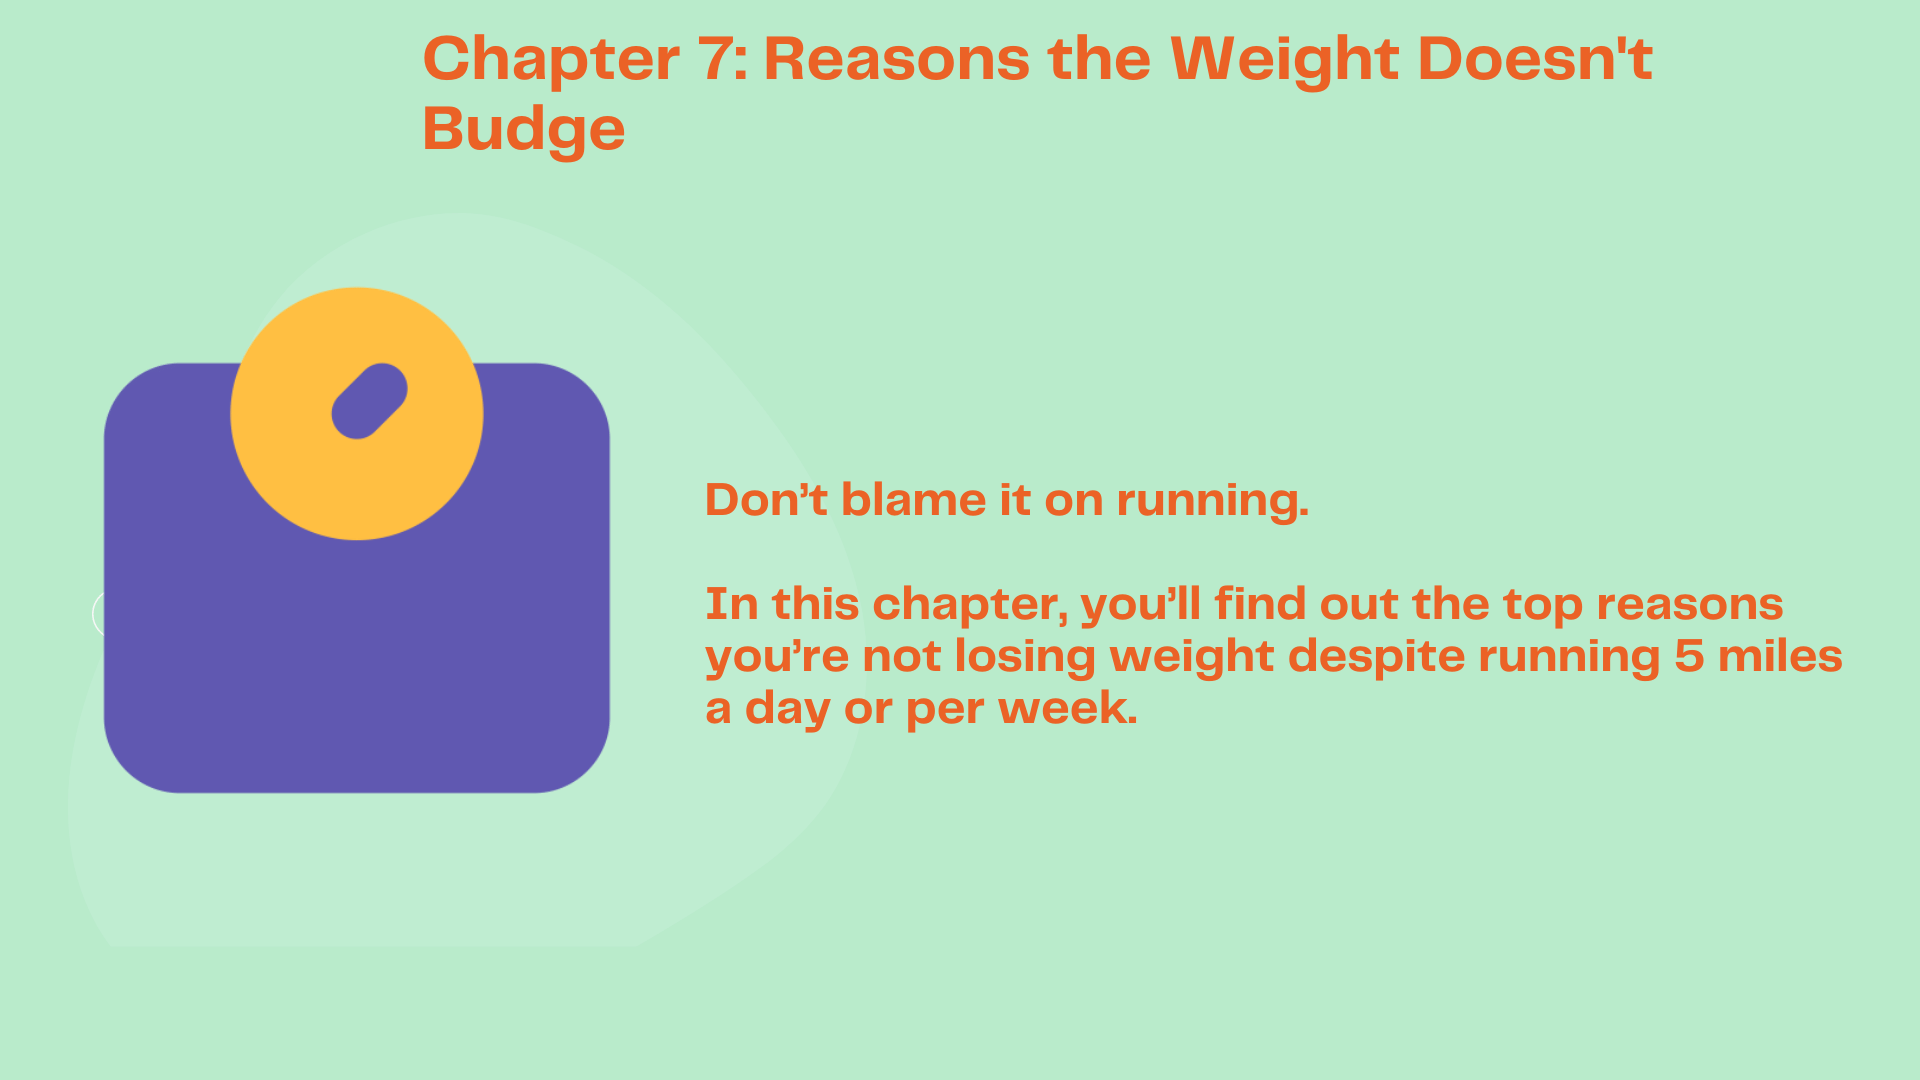 Chapter 7 Reasons You're Not Losing Weight